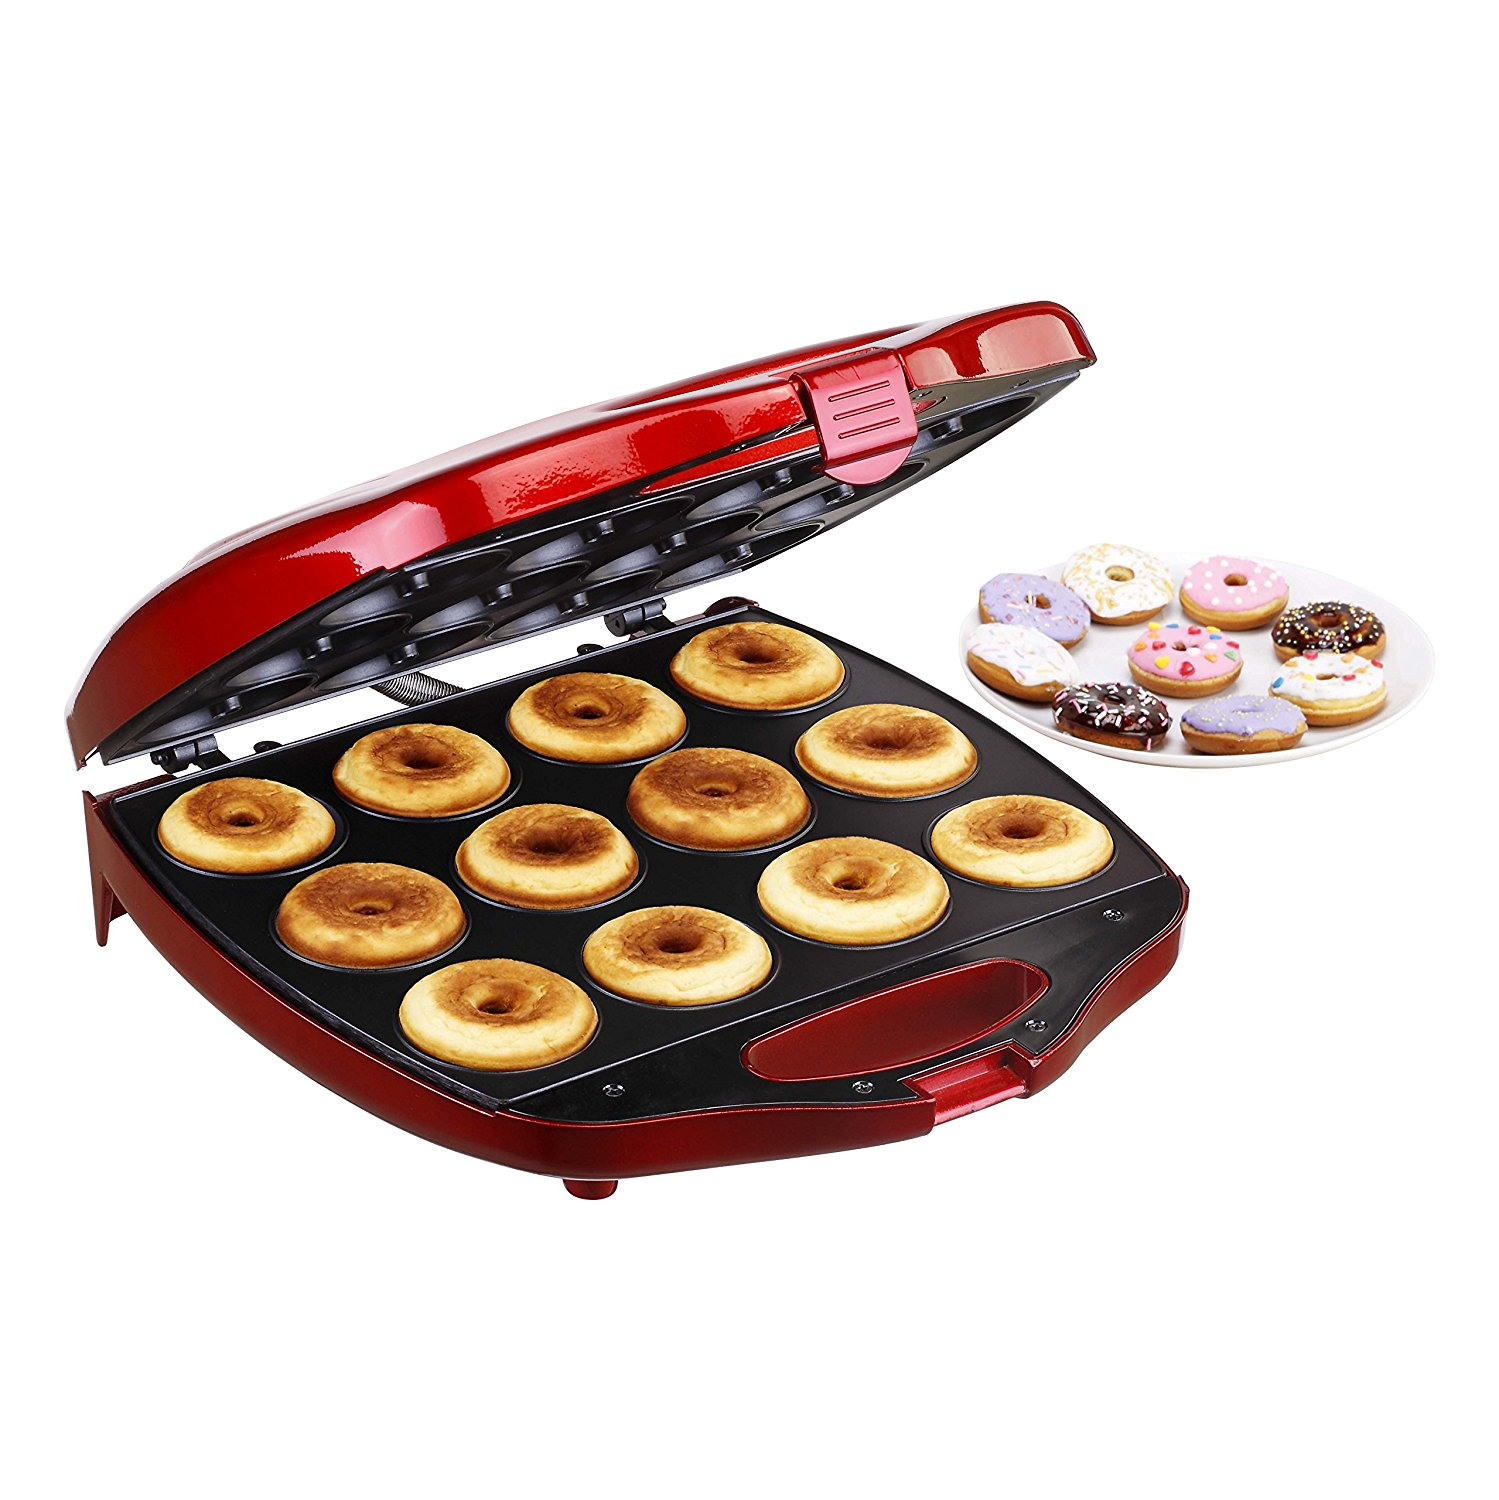 Baking Accessories Store